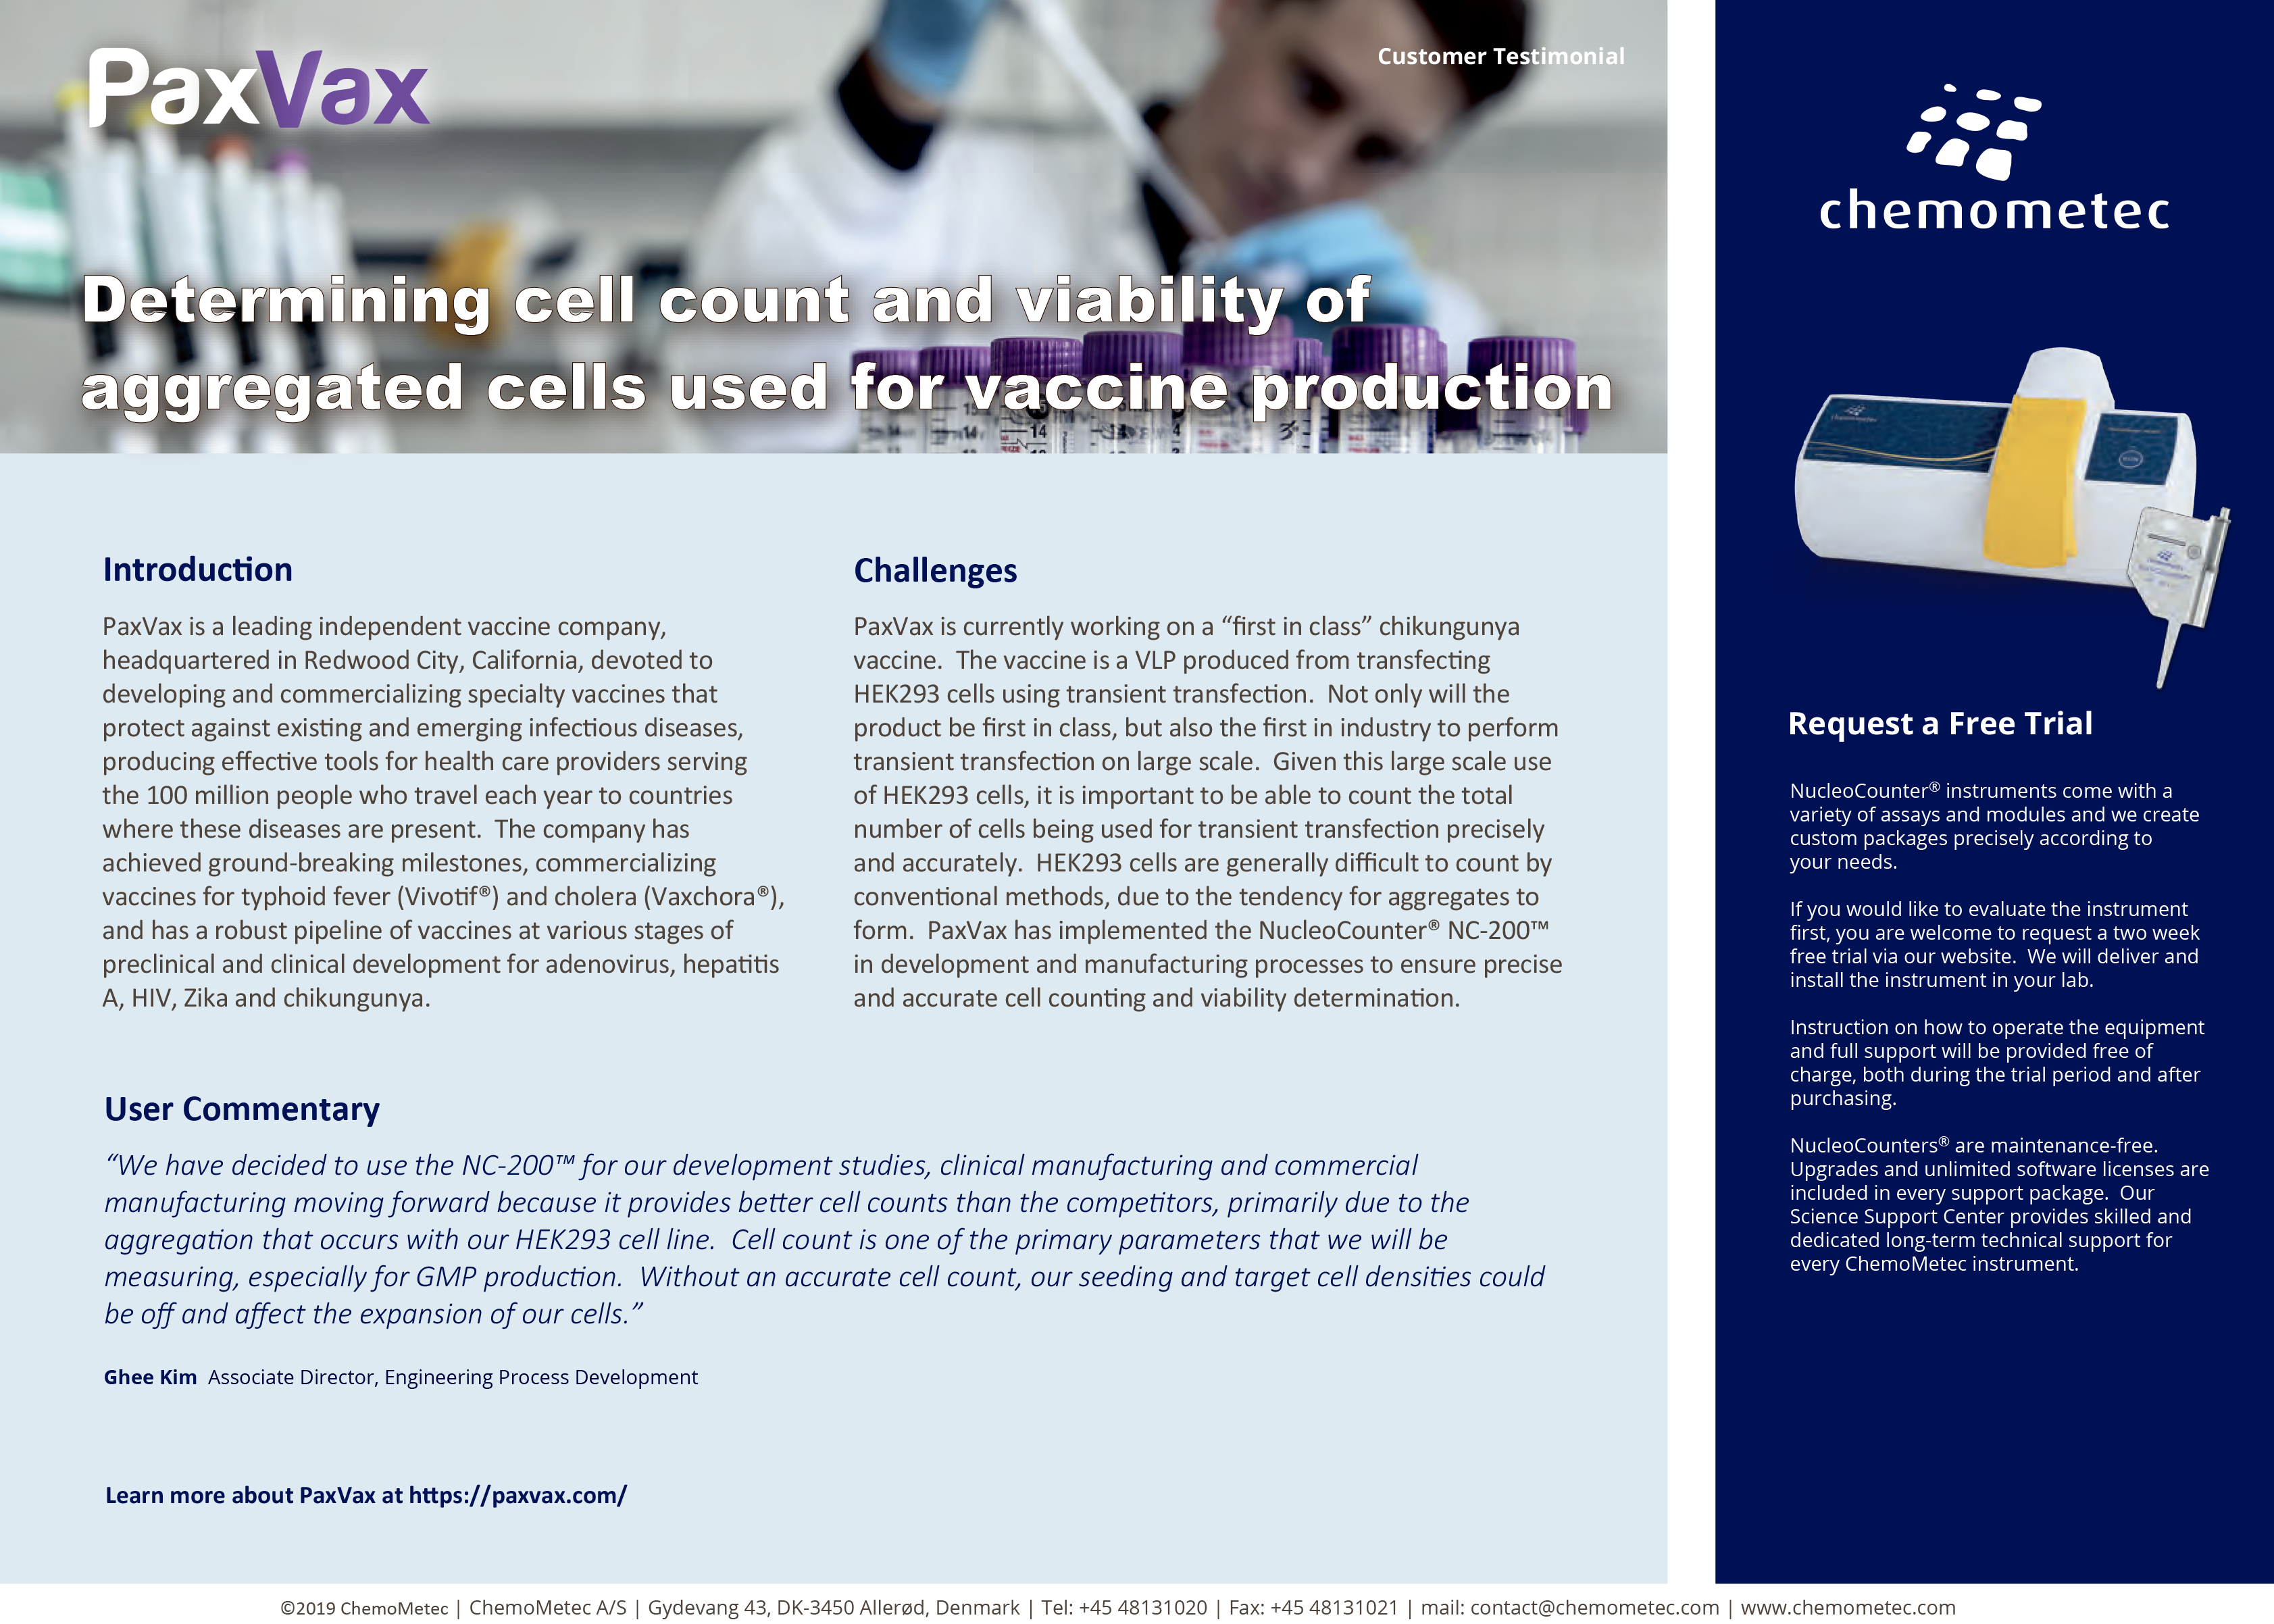 Testimonial of the NucleoCounter® NC-200™ automated cell counter at PaxVax vaccine production